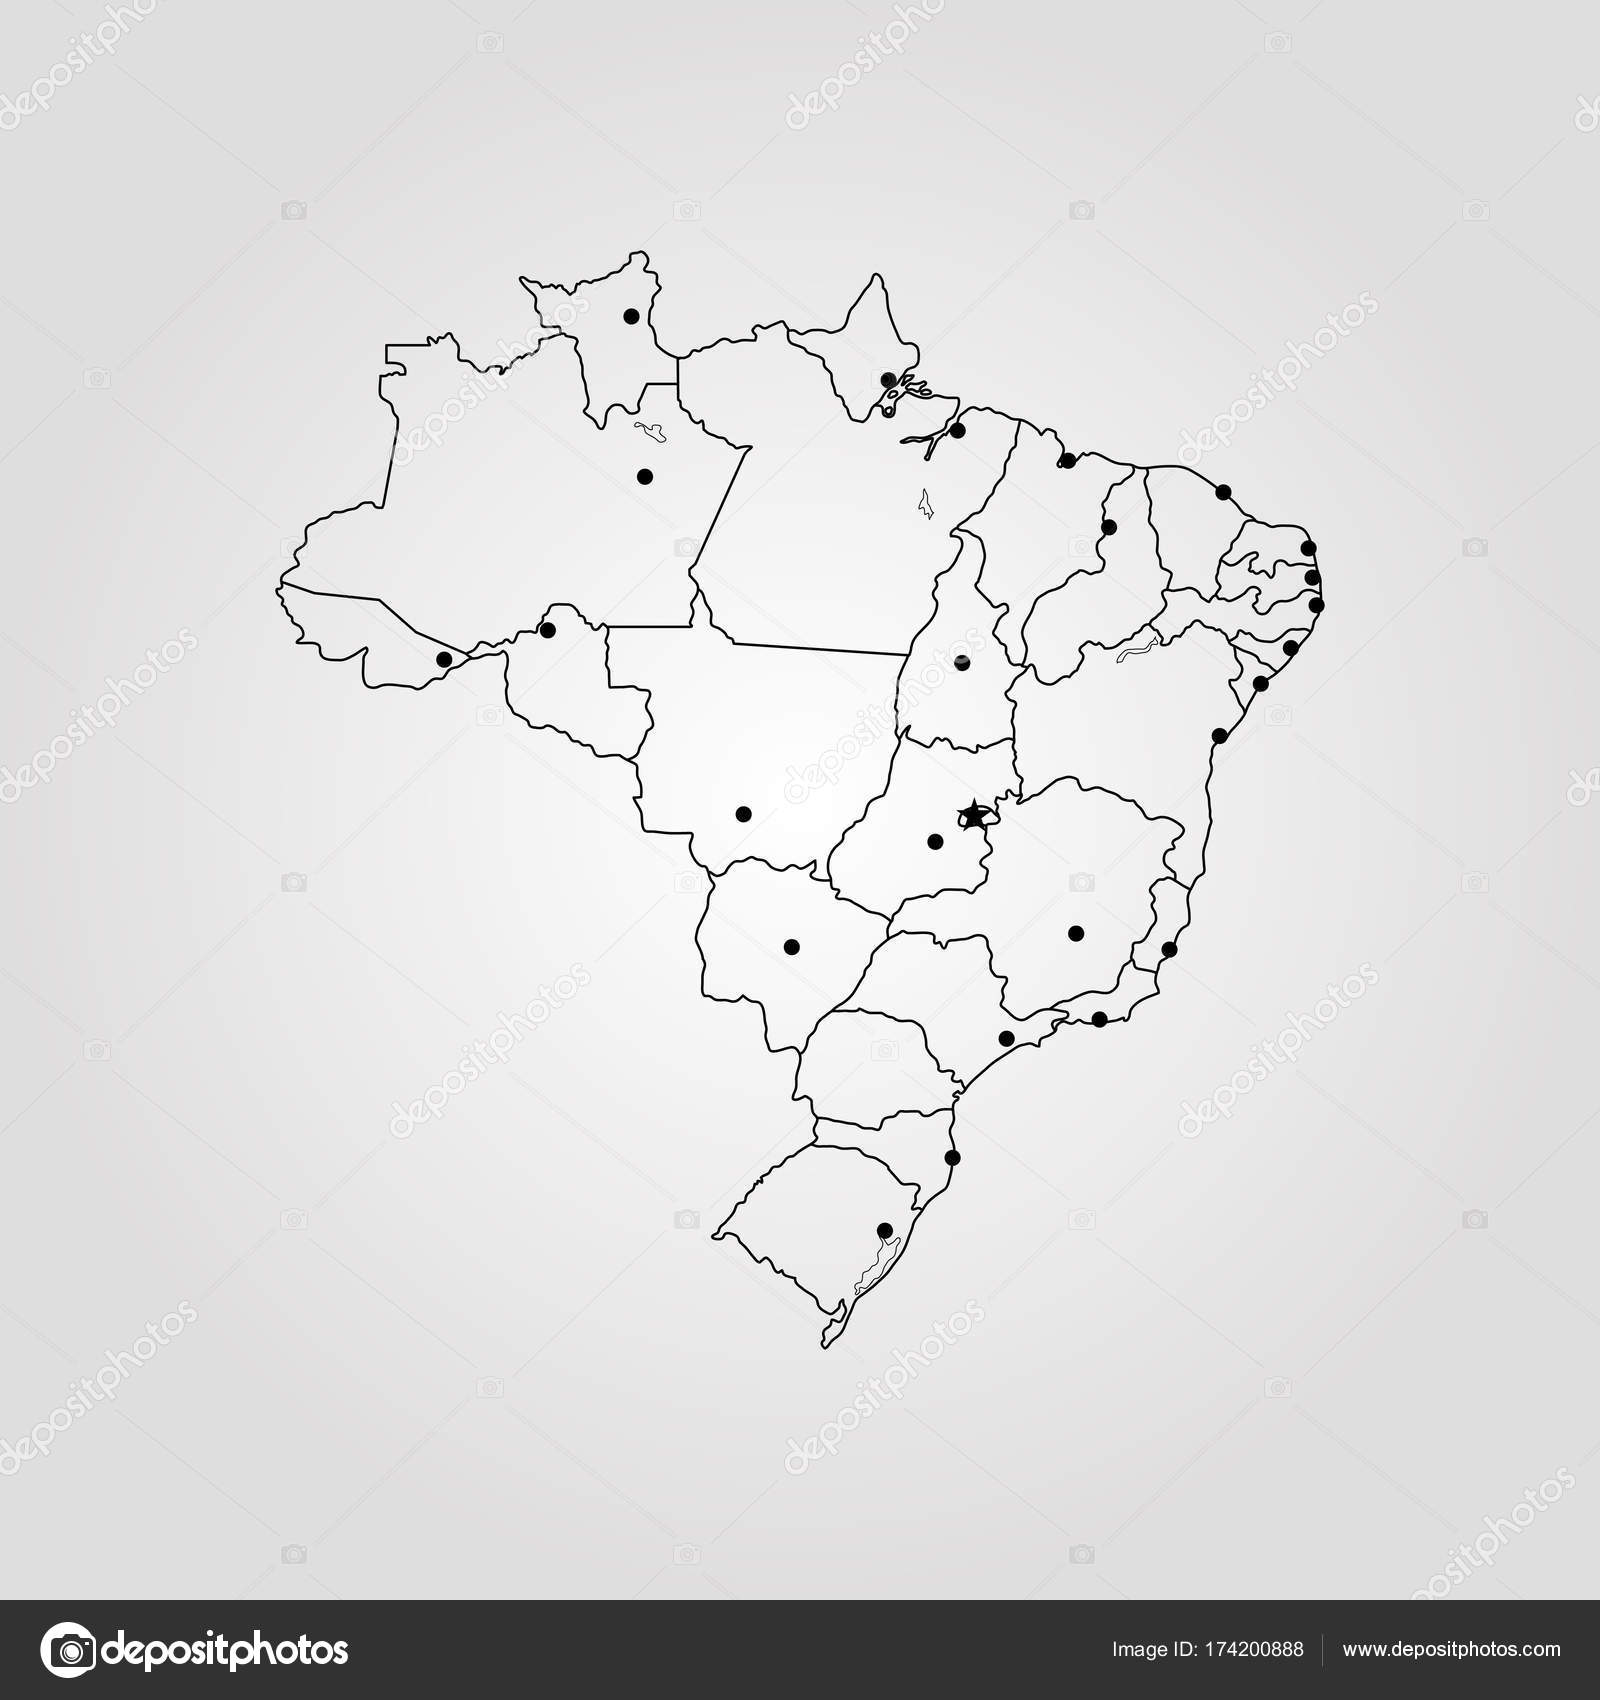 Map of brazil stock vector uglegorets 174200888 map of brazil vector illustration world map vector by uglegorets gumiabroncs Choice Image